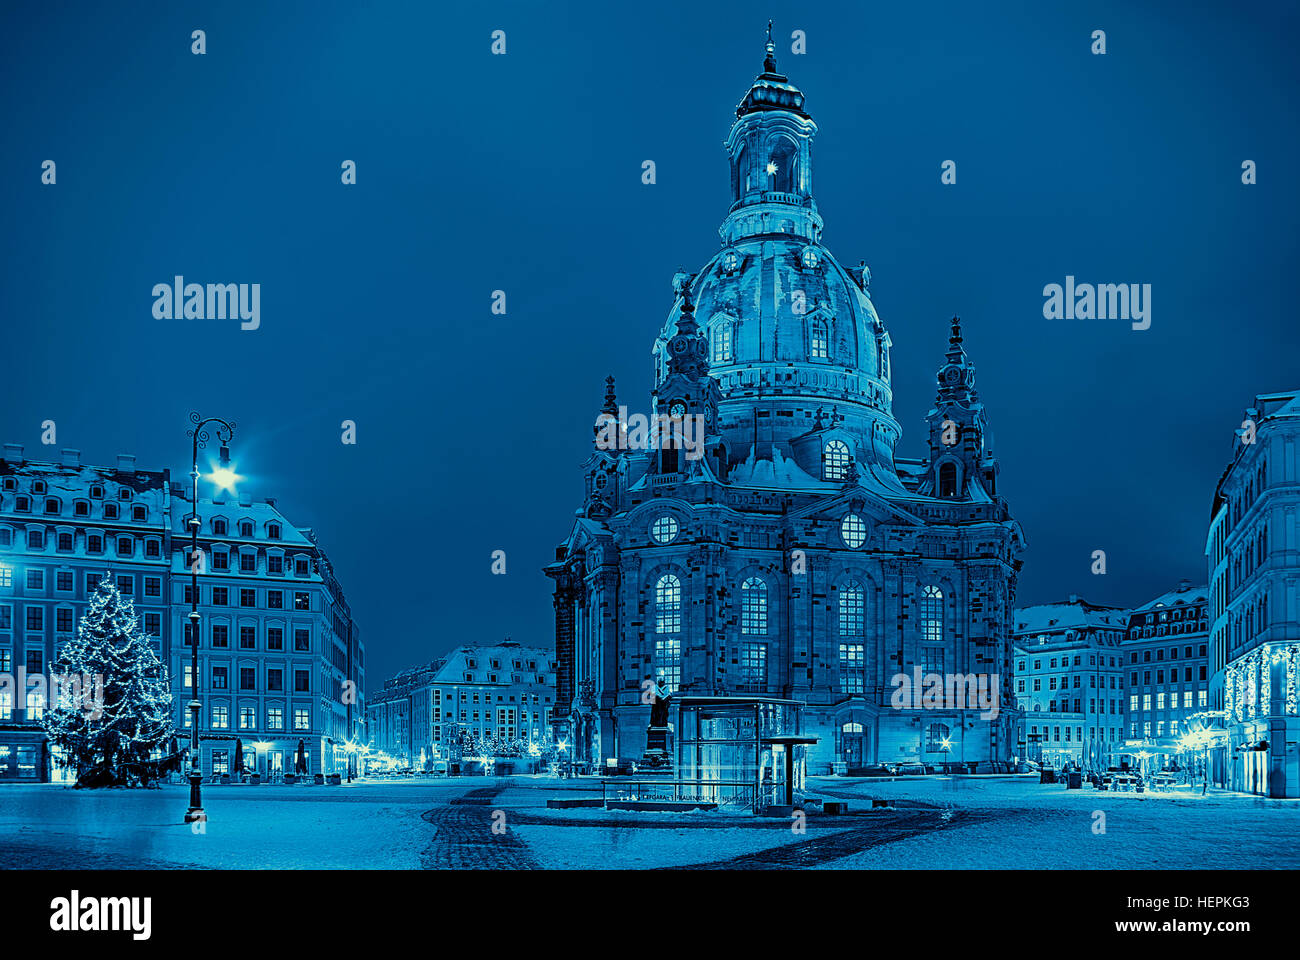 The Frauenkirche Church in the city of Dresden, Saxony, Germany at Christmas time in blue toning. Die Dresdner Frauenkirche - Stock Image